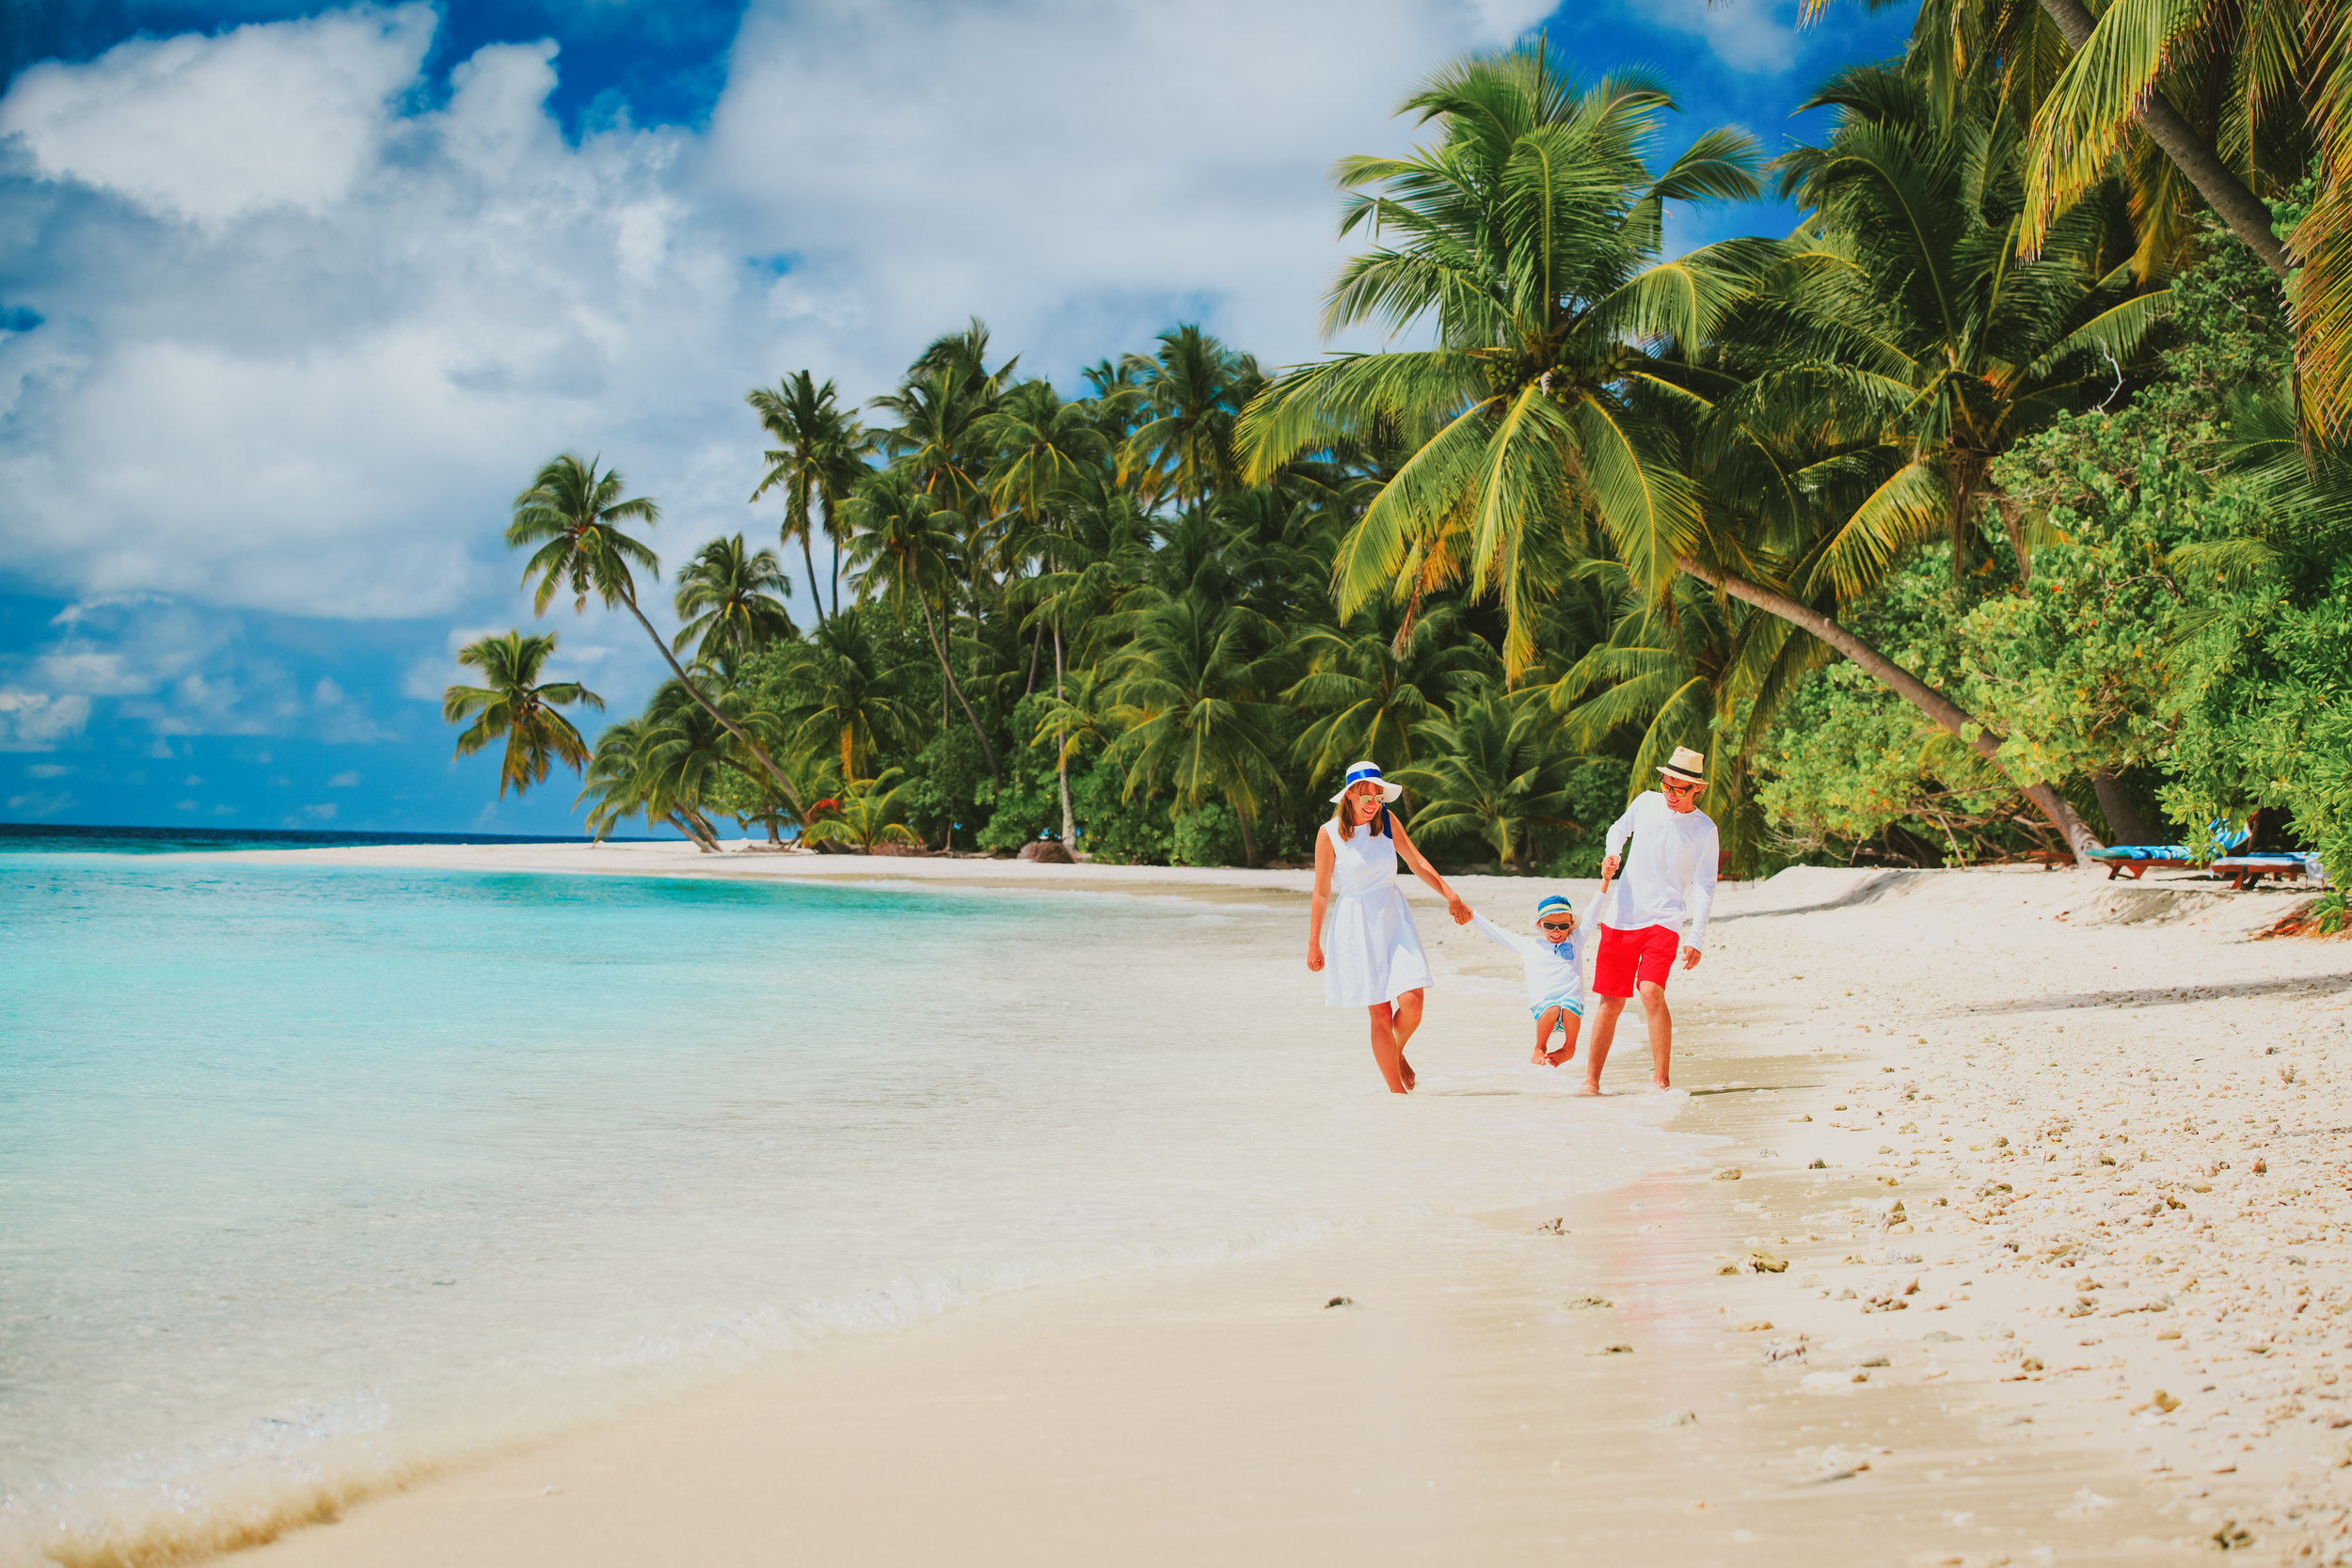 invite-to-paradise-maldives-sri-lanka-specialists-experts-travel-agent-tour-operator-luxury-family-holiday-package.jpg